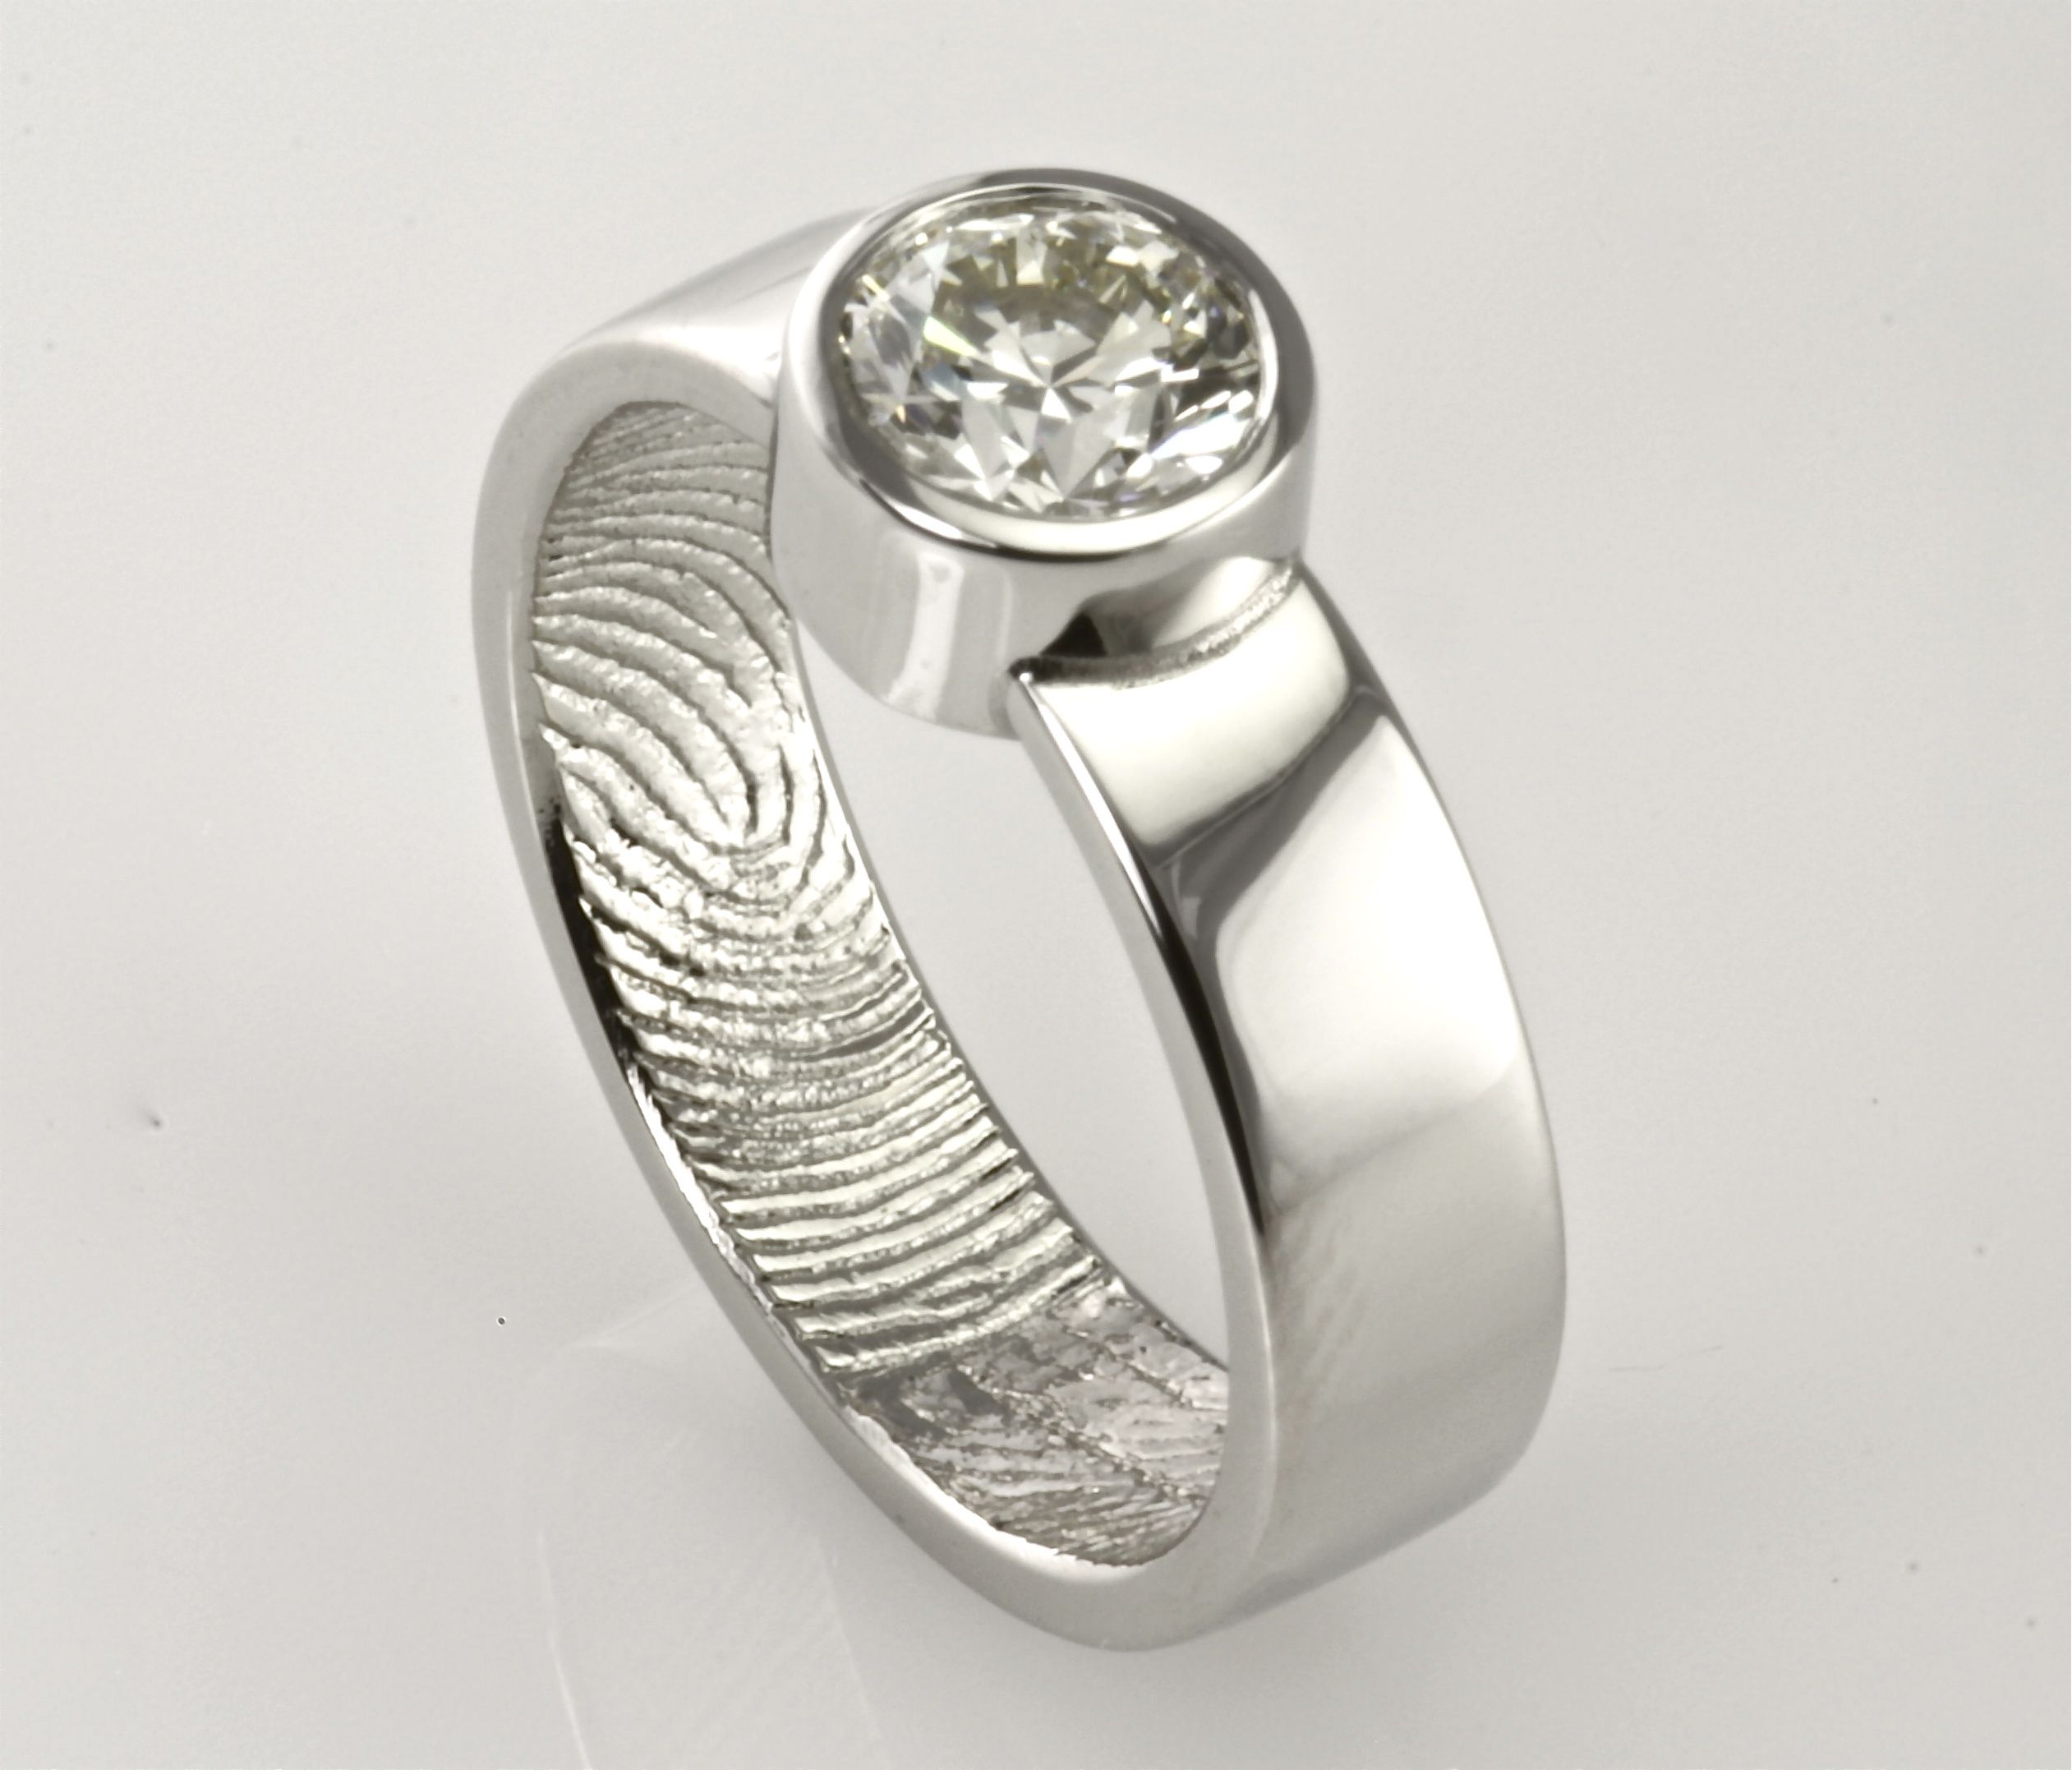 fingerprint bands handpicked rings venuelust ideas mens large image wedding unique ring custom post